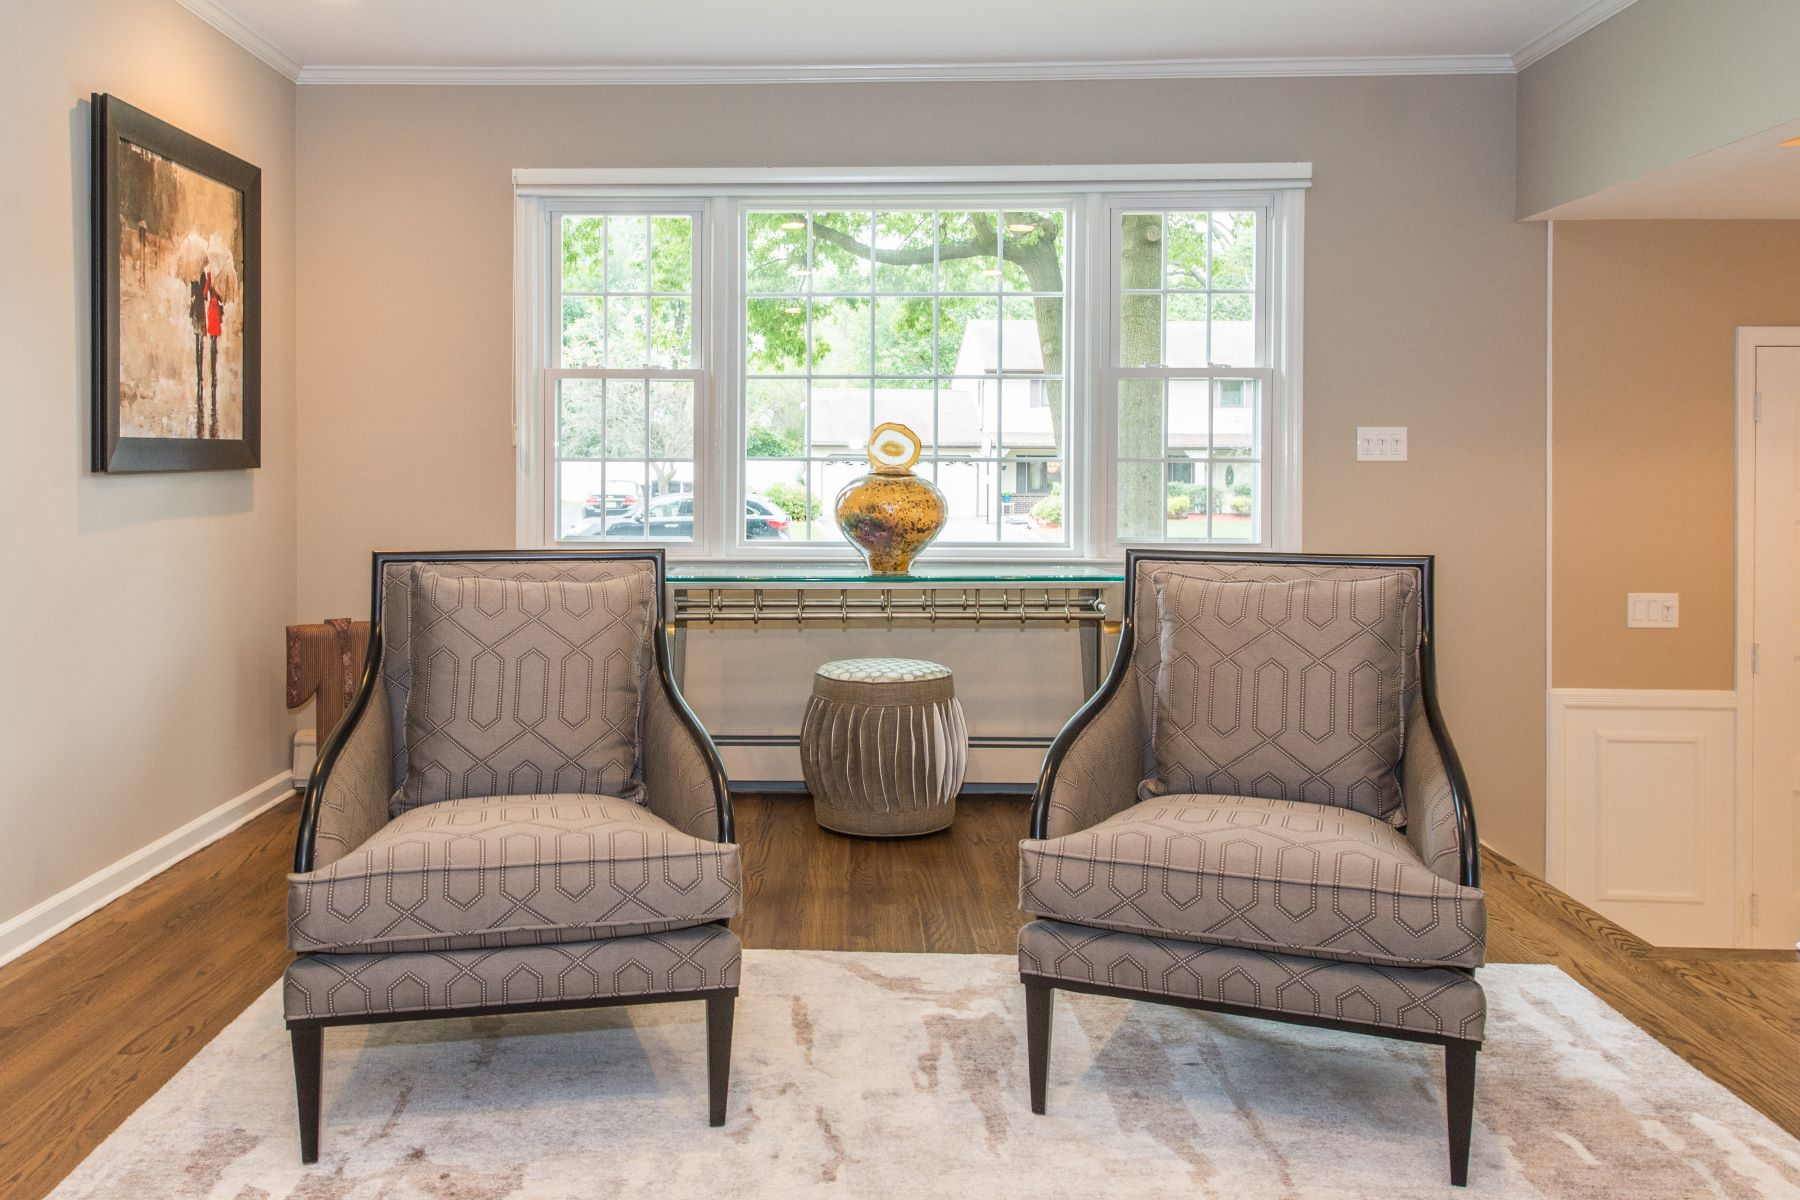 Single Family Homes for Sale at Well Appointed Colonial on Cul-de-Sac 6 Lisa Place Montville, New Jersey 07045 United States